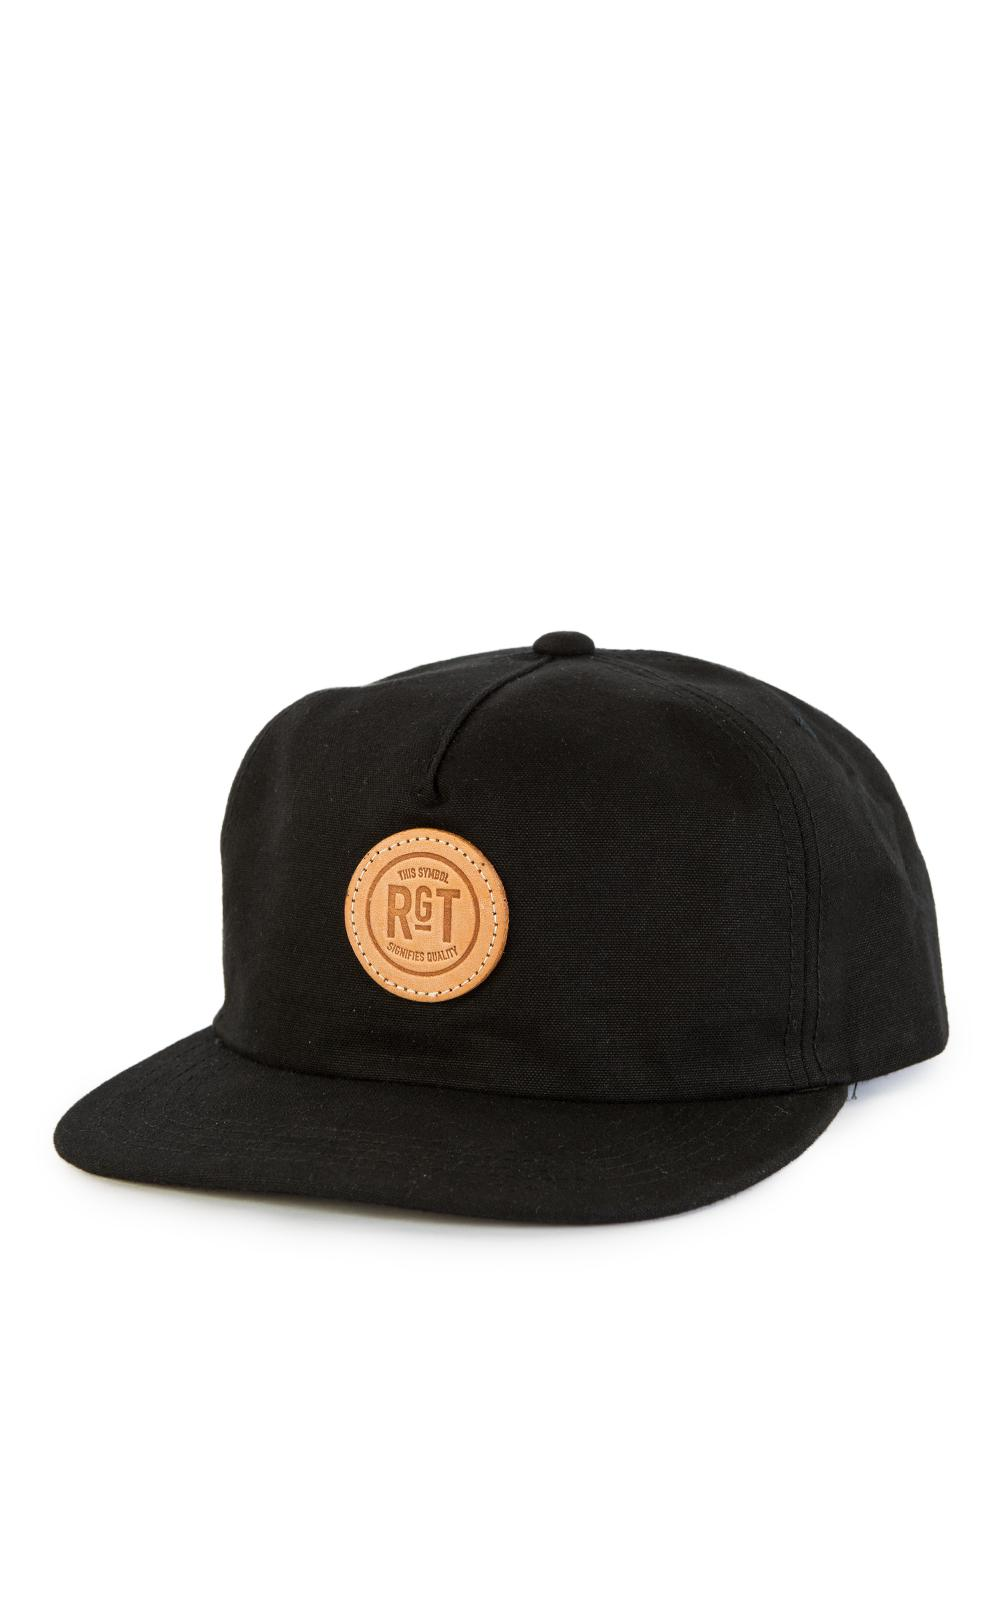 Rogue Territory 5 Panel Snapback Hat Black in Black for Men - Lyst 36a480cae675